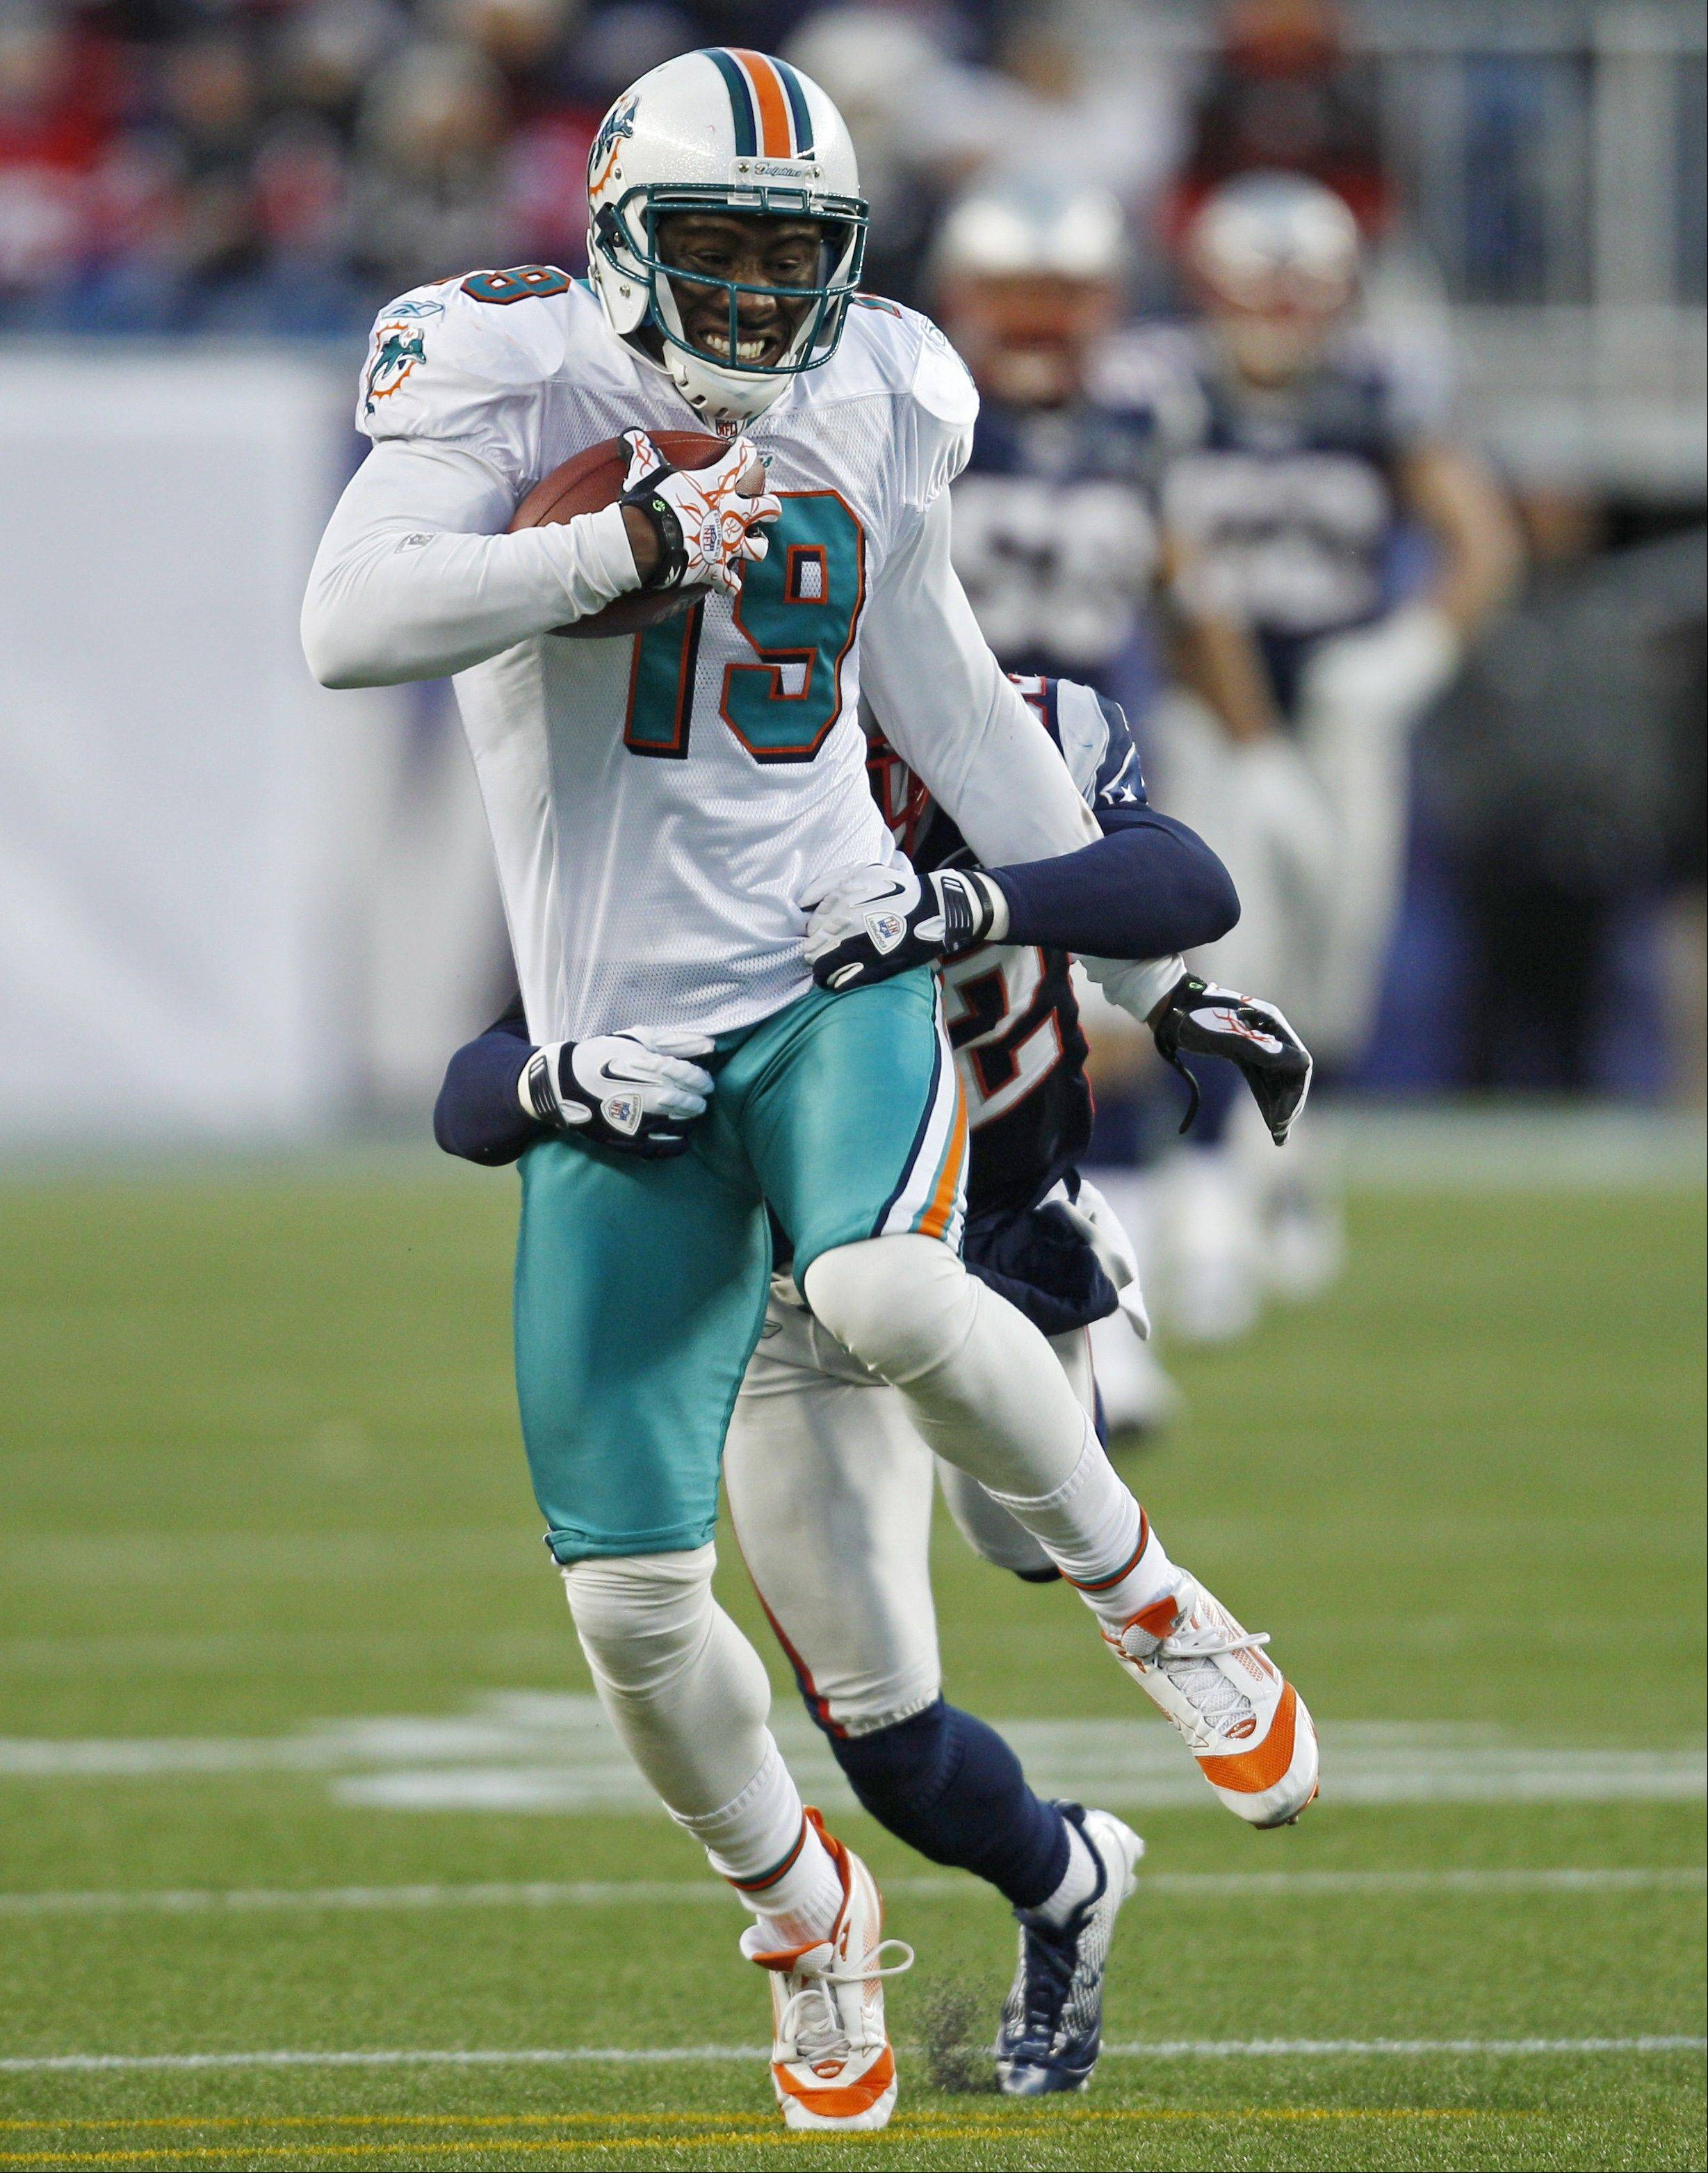 At 6-foot-4, wide receiver Brandon Marshall will be a big target for Bears quarterback Jay Cutler. The Bears got Marshall in a trade with the Miami Dolphins Tuesday.